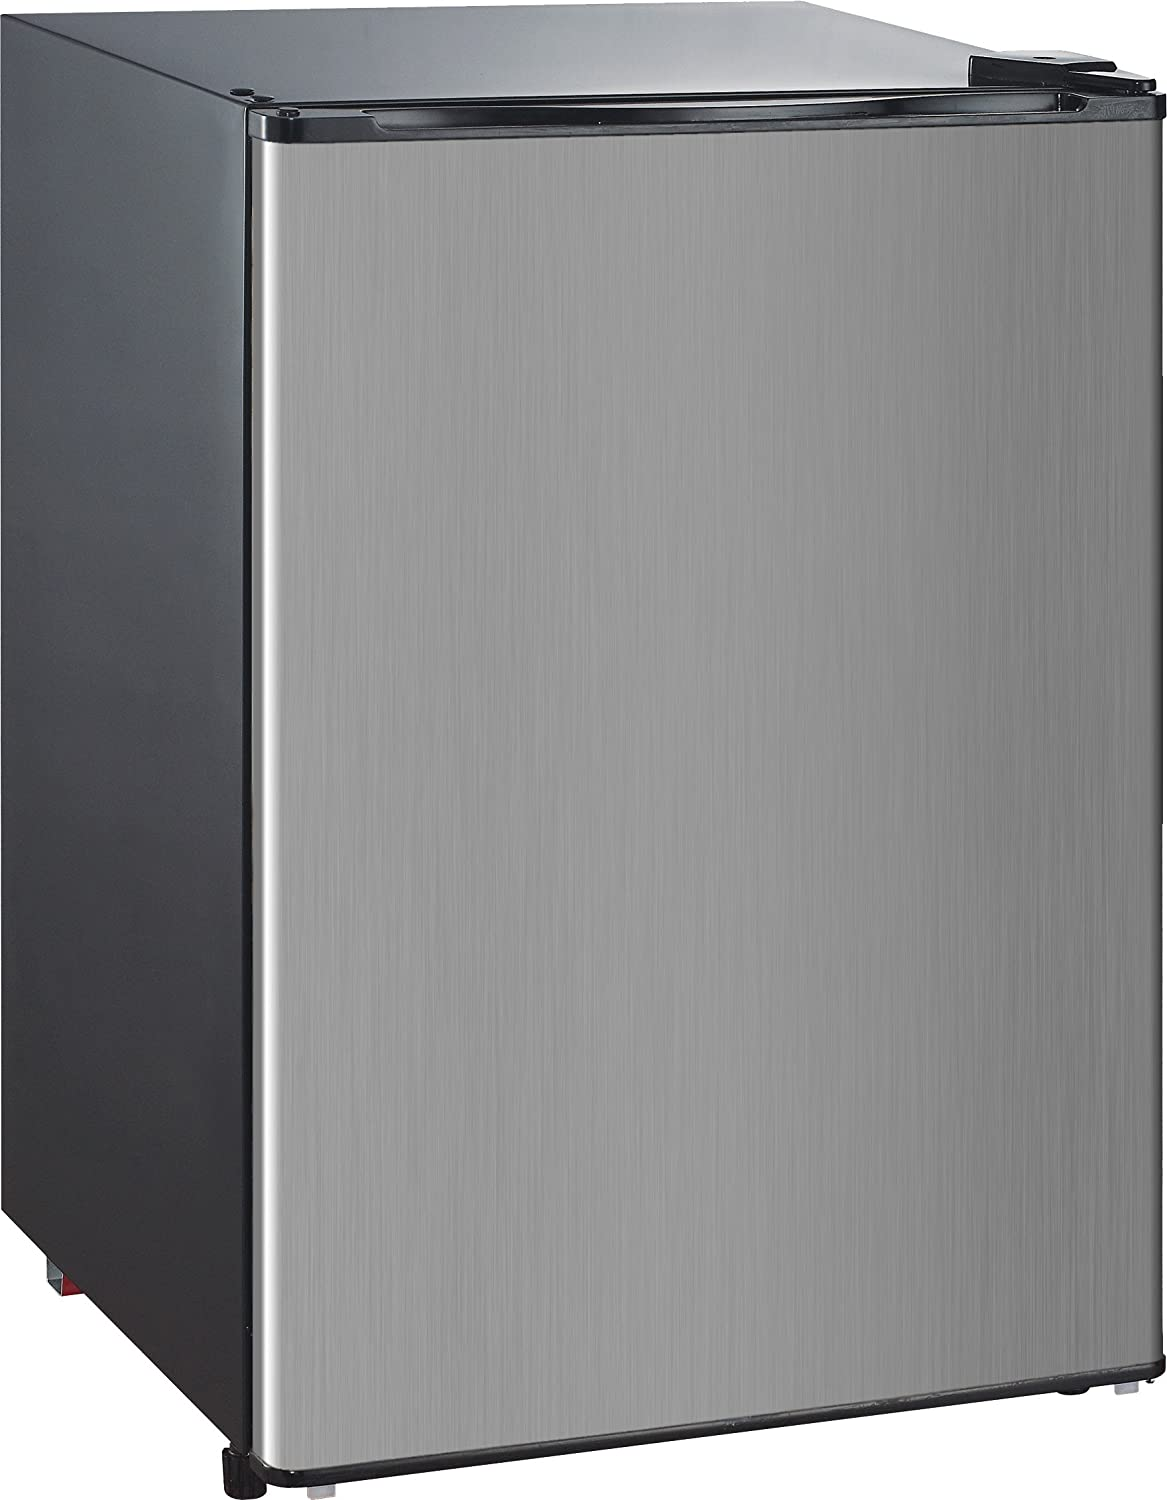 RCA-Igloo 4.5 Cubic Foot Fridge, Stainless Steel